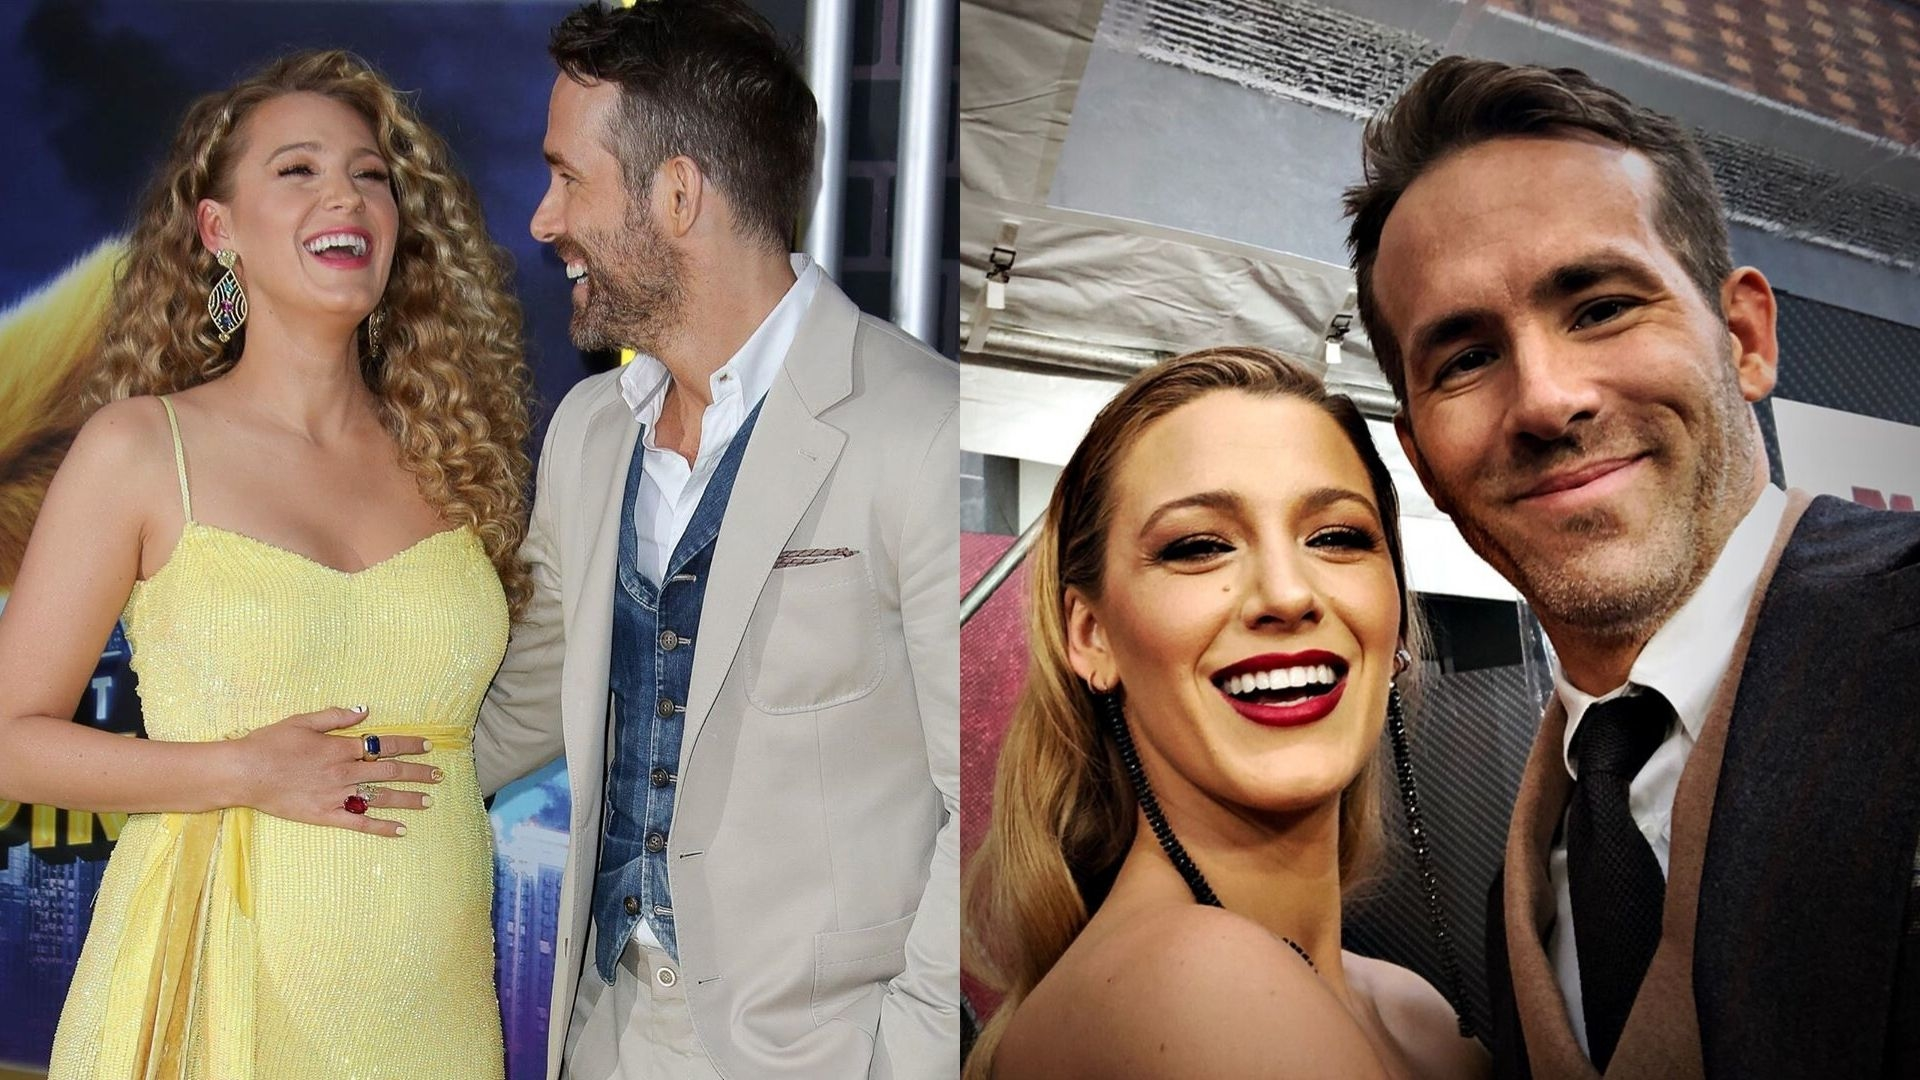 Ryan Reynolds Posts A Dinner Date Selfie With Blake Lively To Prove It Happened